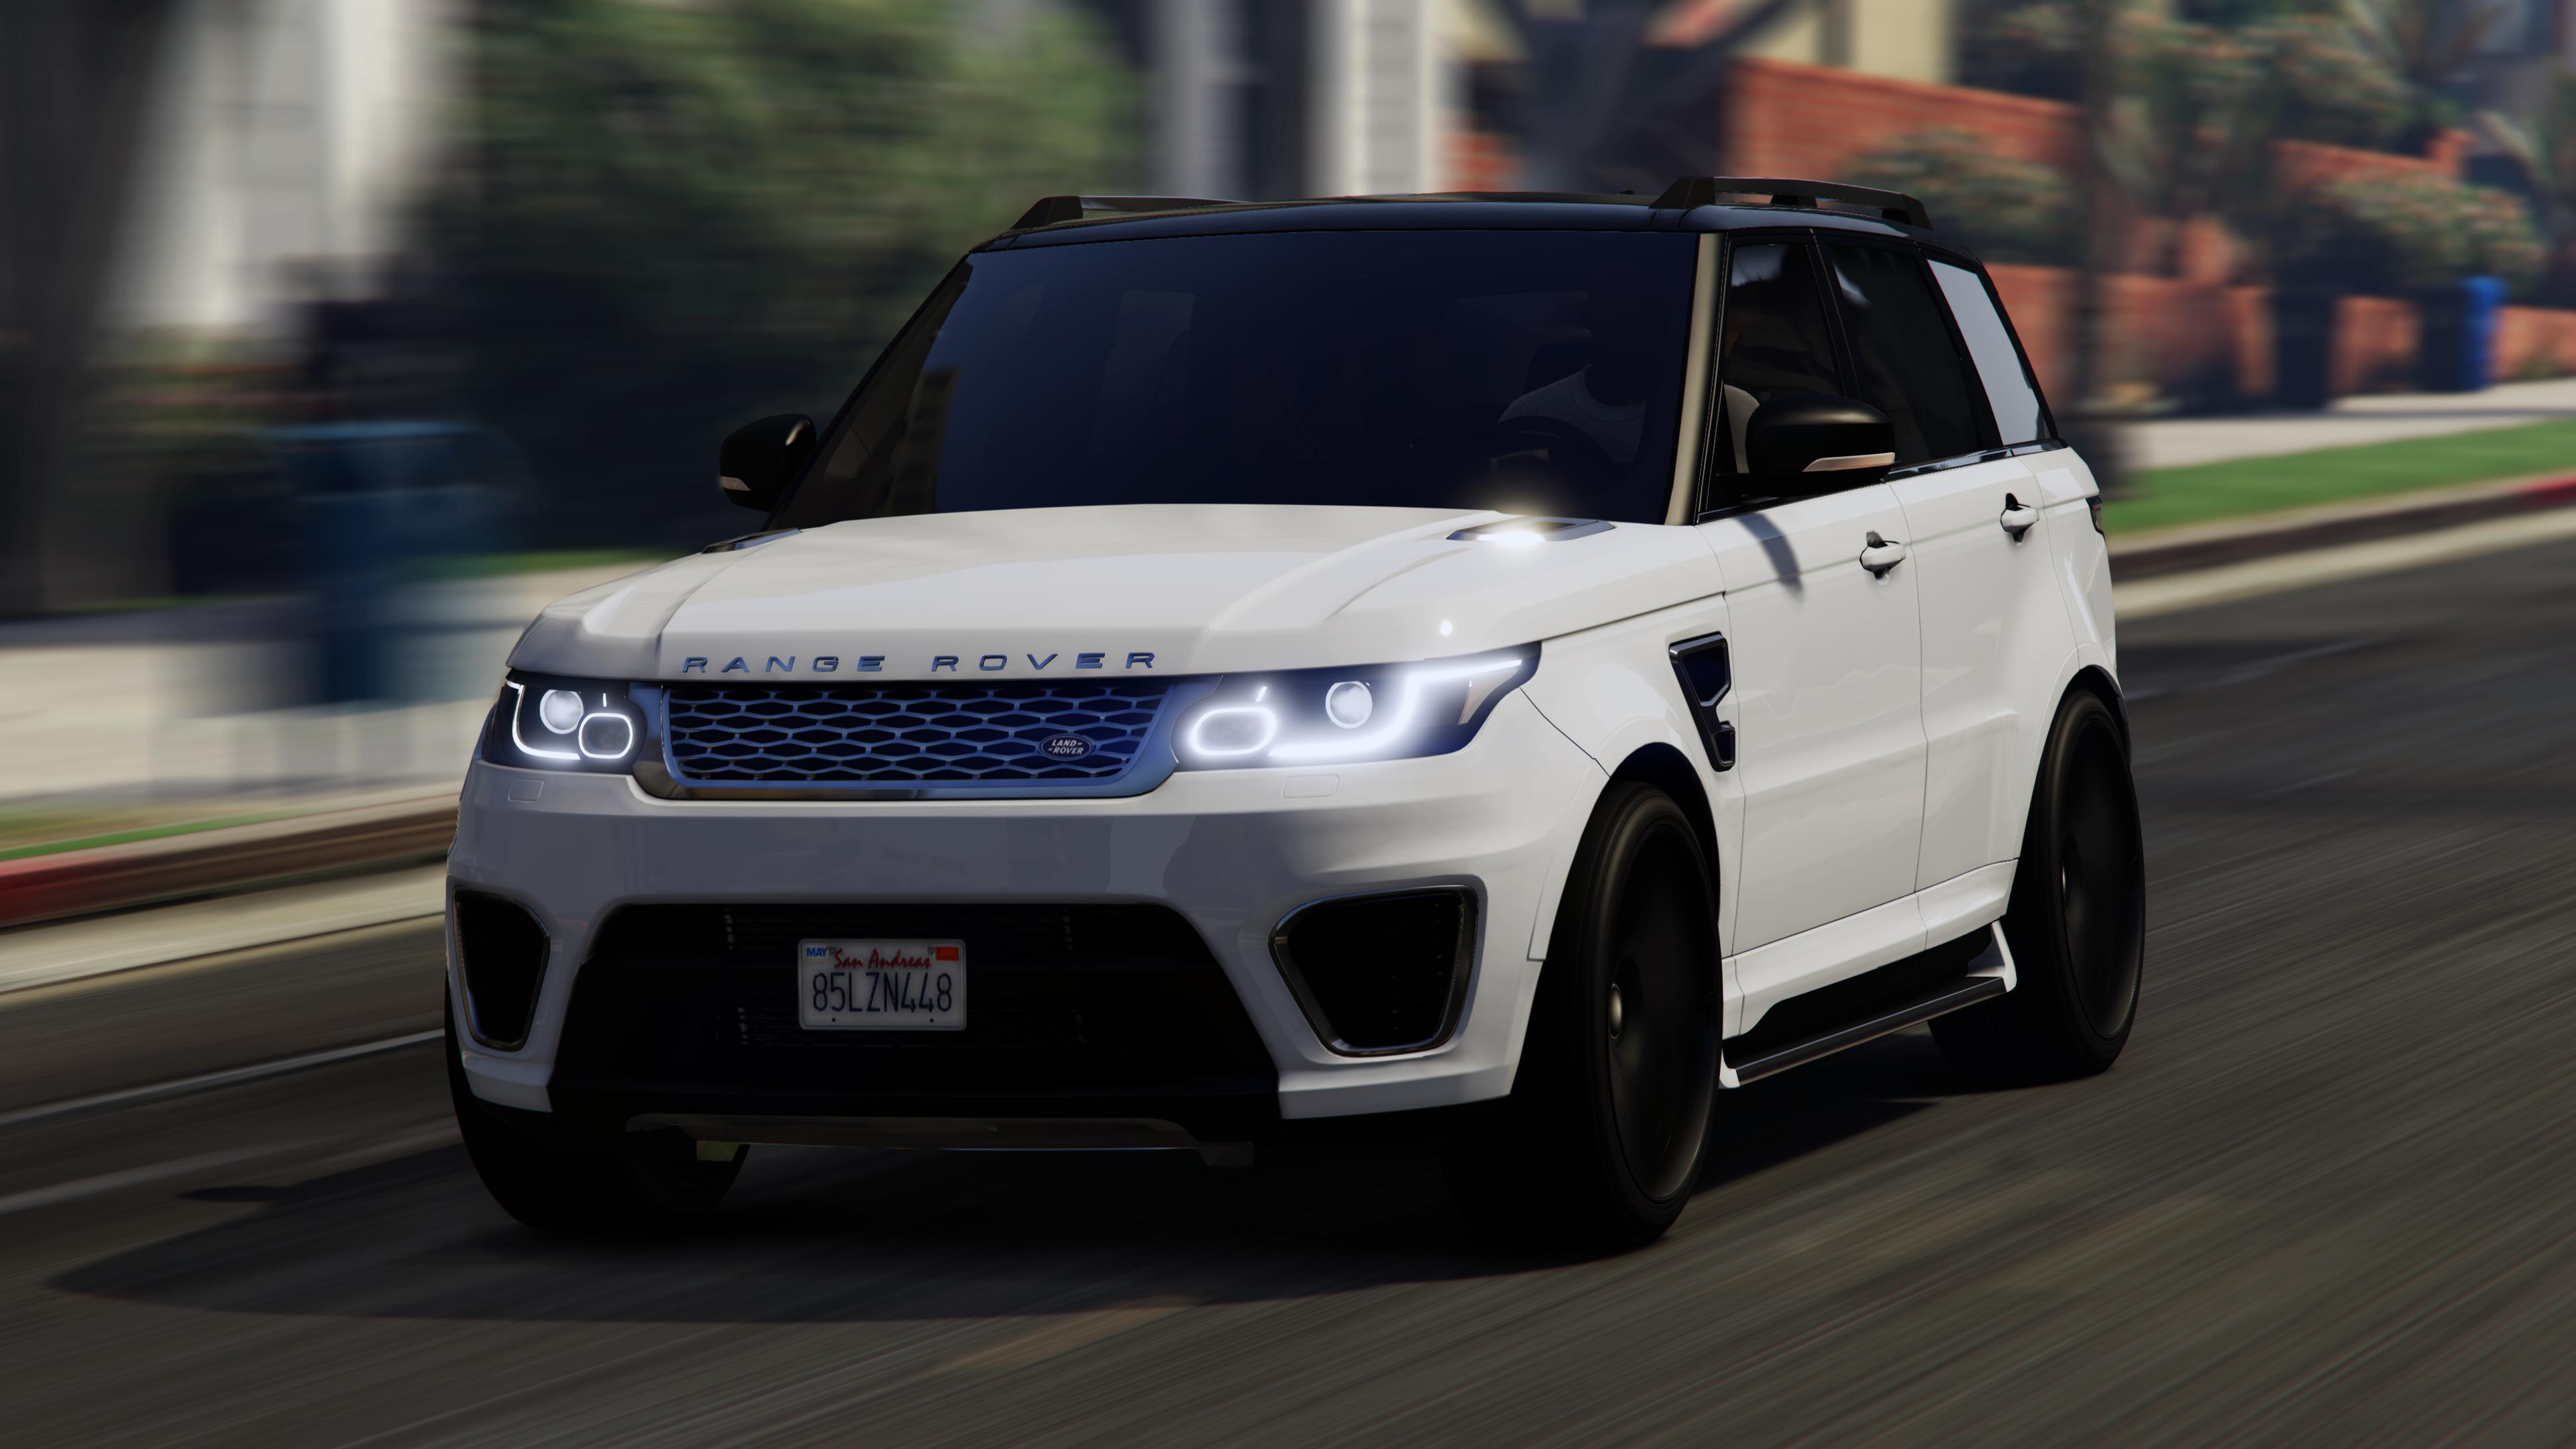 range rover sport replace lods gta5. Black Bedroom Furniture Sets. Home Design Ideas